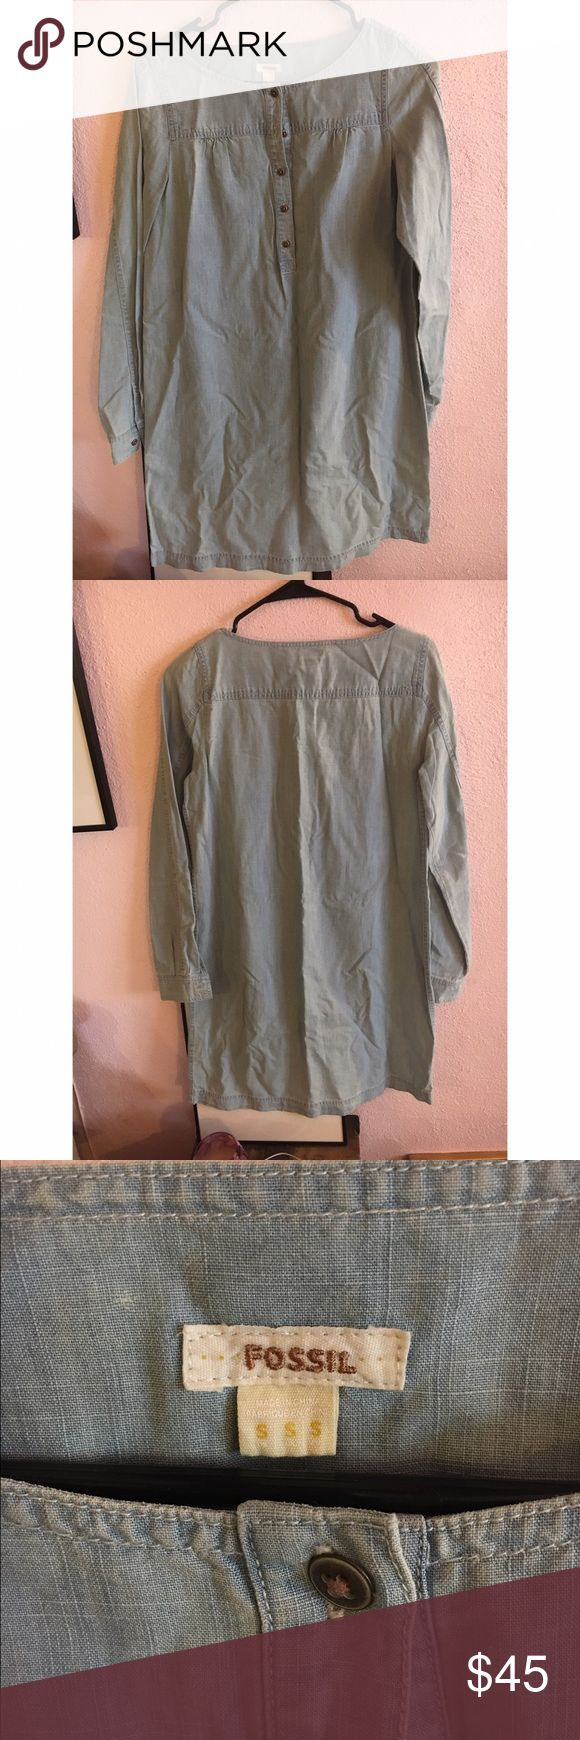 Fossil chambray shirt dress Worn once. Perfect condition. Knee length chambray. Fossil Dresses